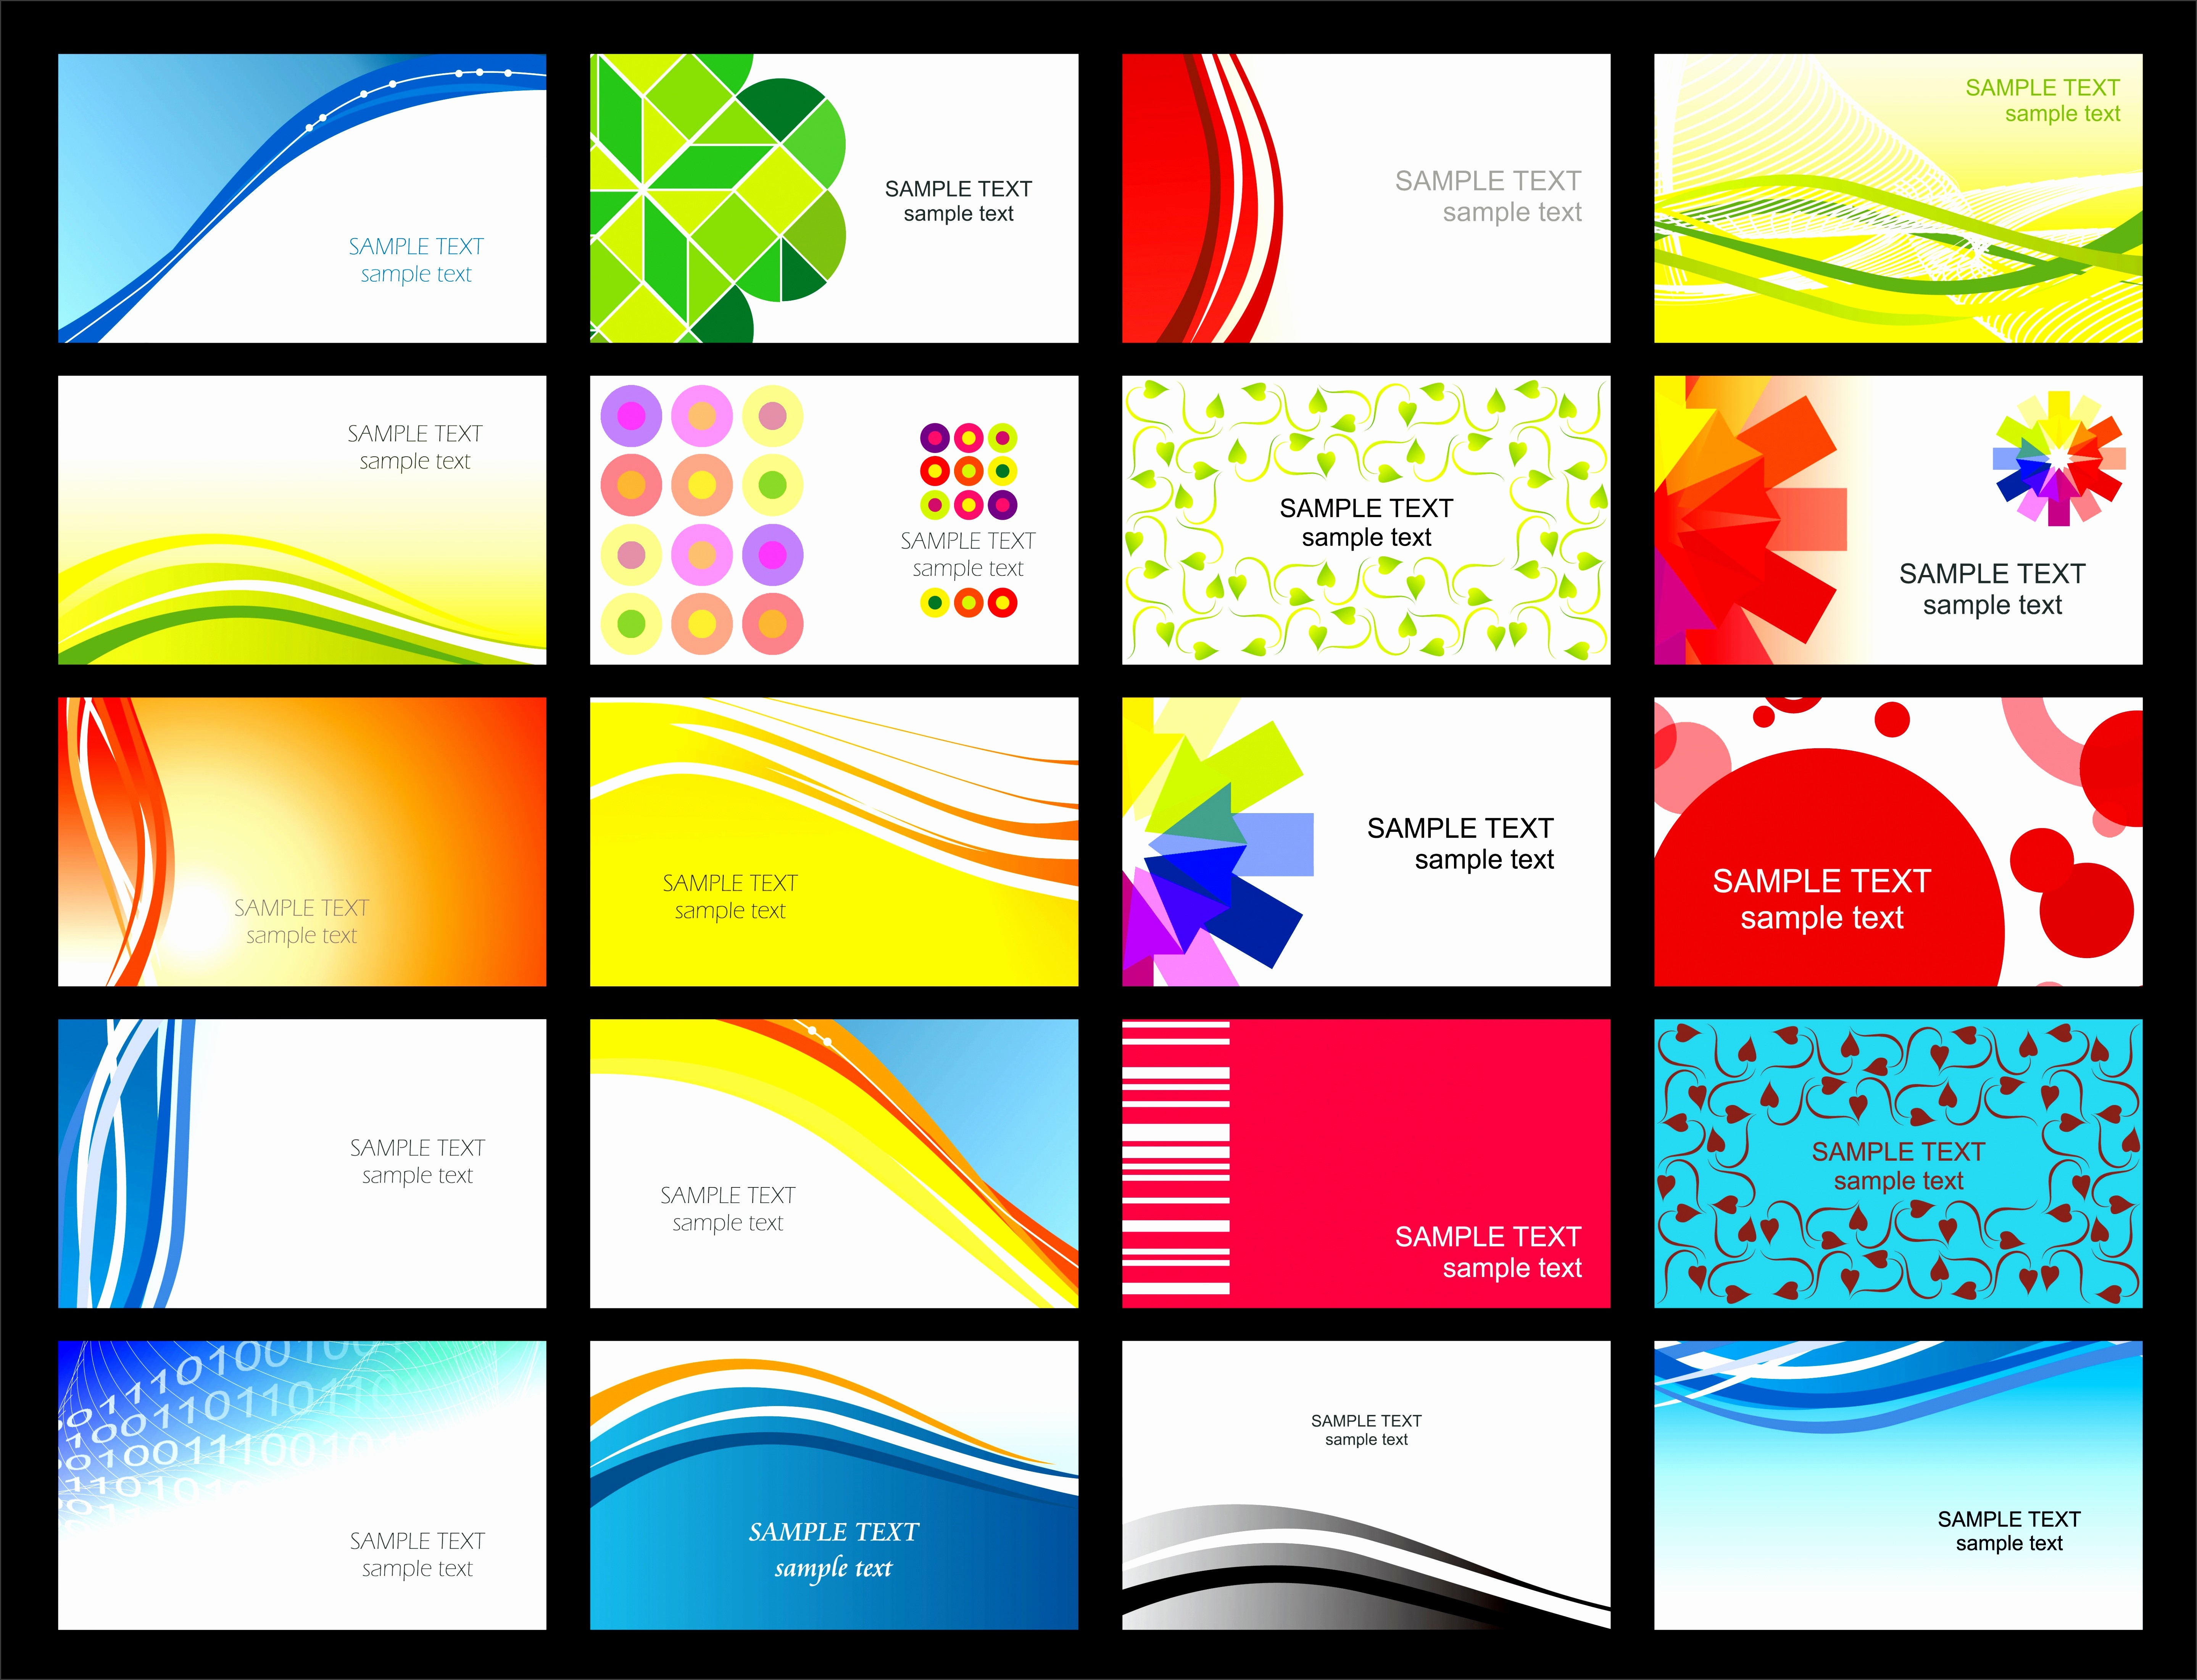 Microsoft Business Card Template Free Elegant 7 Microsoft Business Card Templates Free